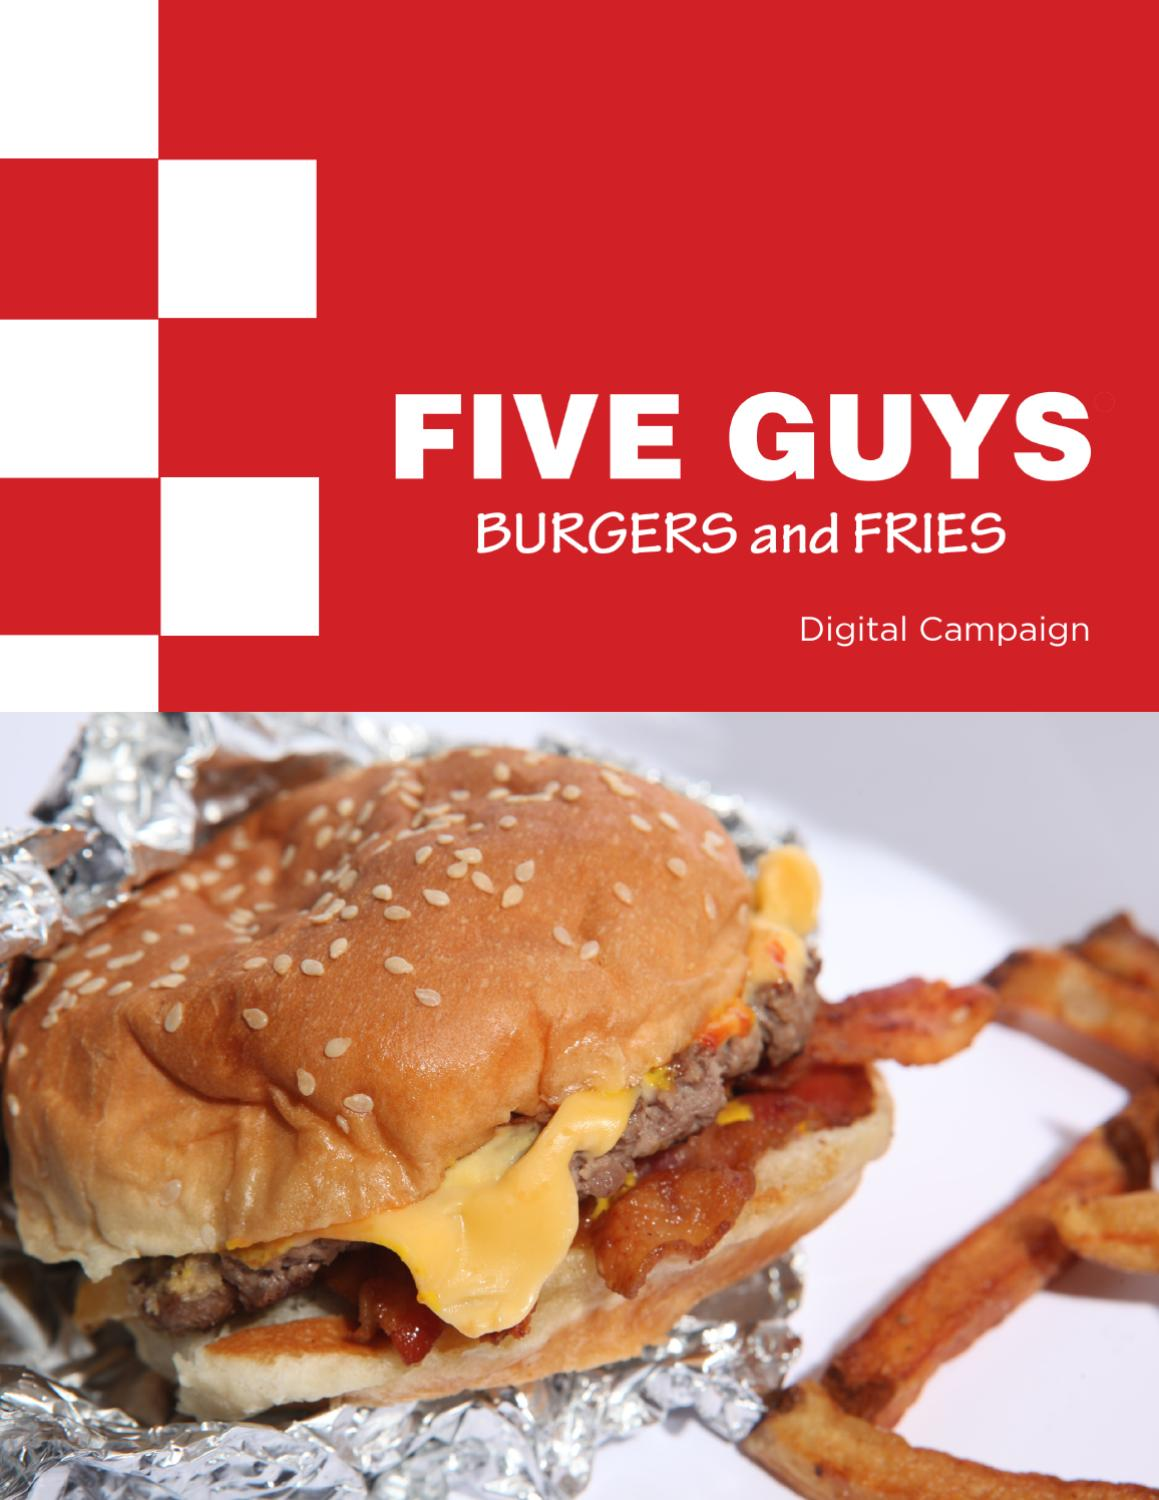 five guys burgers and fries ingredients for success essay